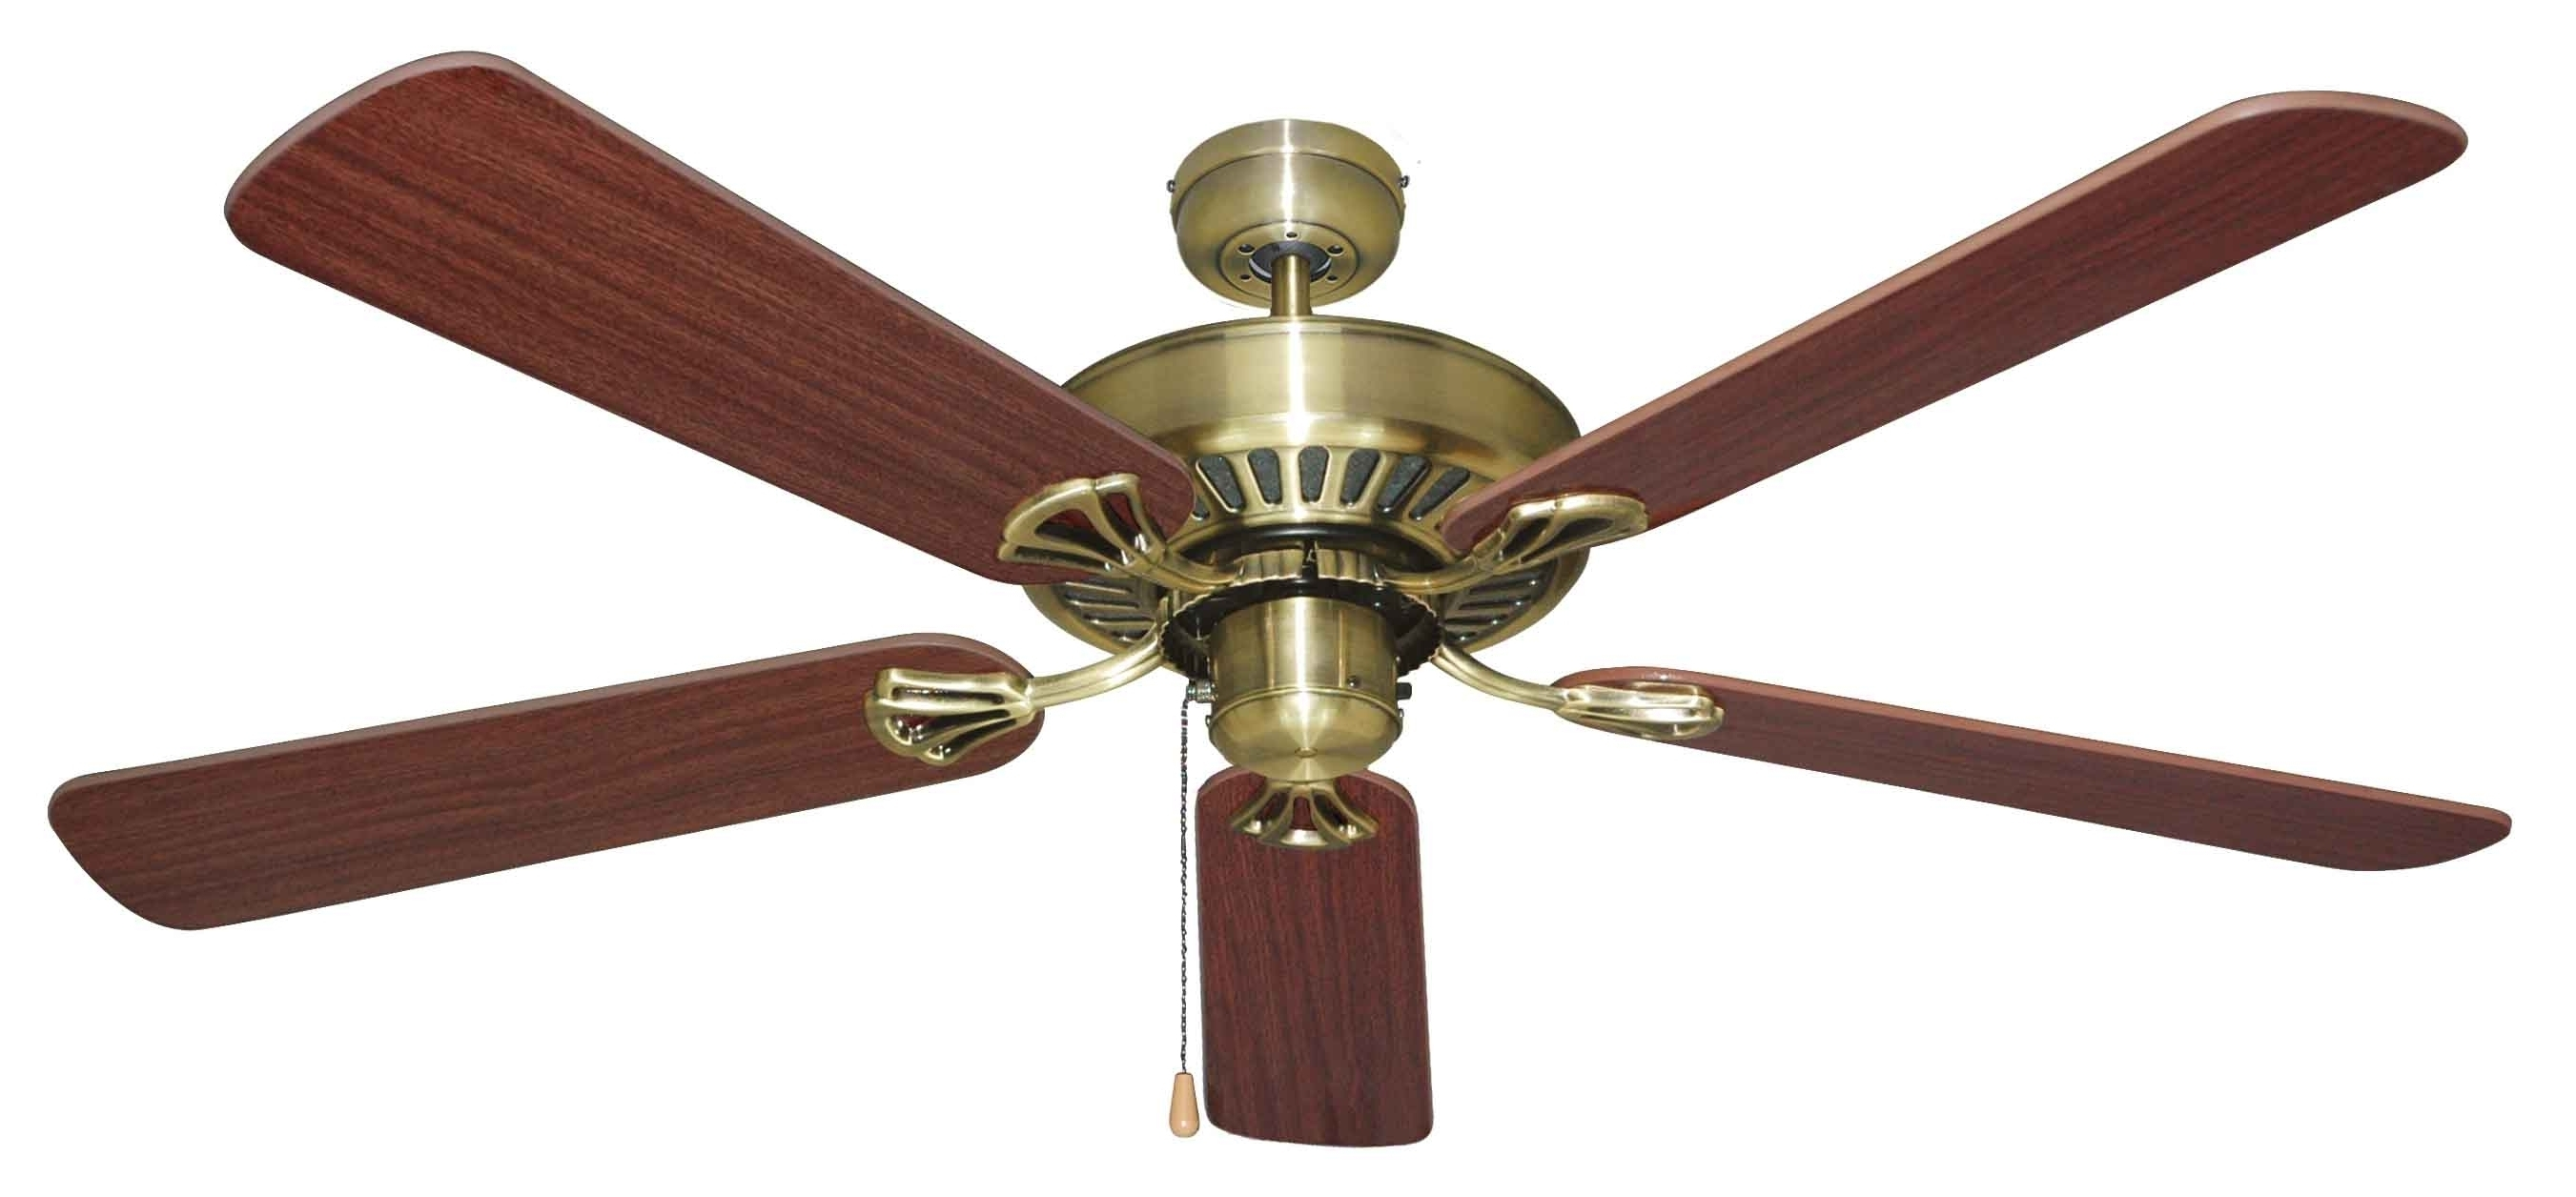 Mercator Ceiling Fans Bunnings • Ceiling Fans Ideas For 2019 Outdoor Ceiling Fans At Bunnings (View 11 of 20)